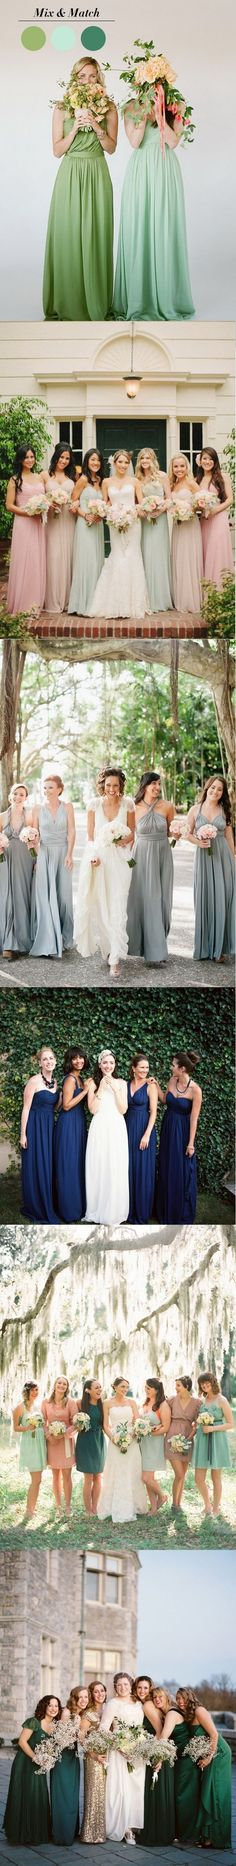 chic mismatched bridesmaid dresses style ideas for 2015